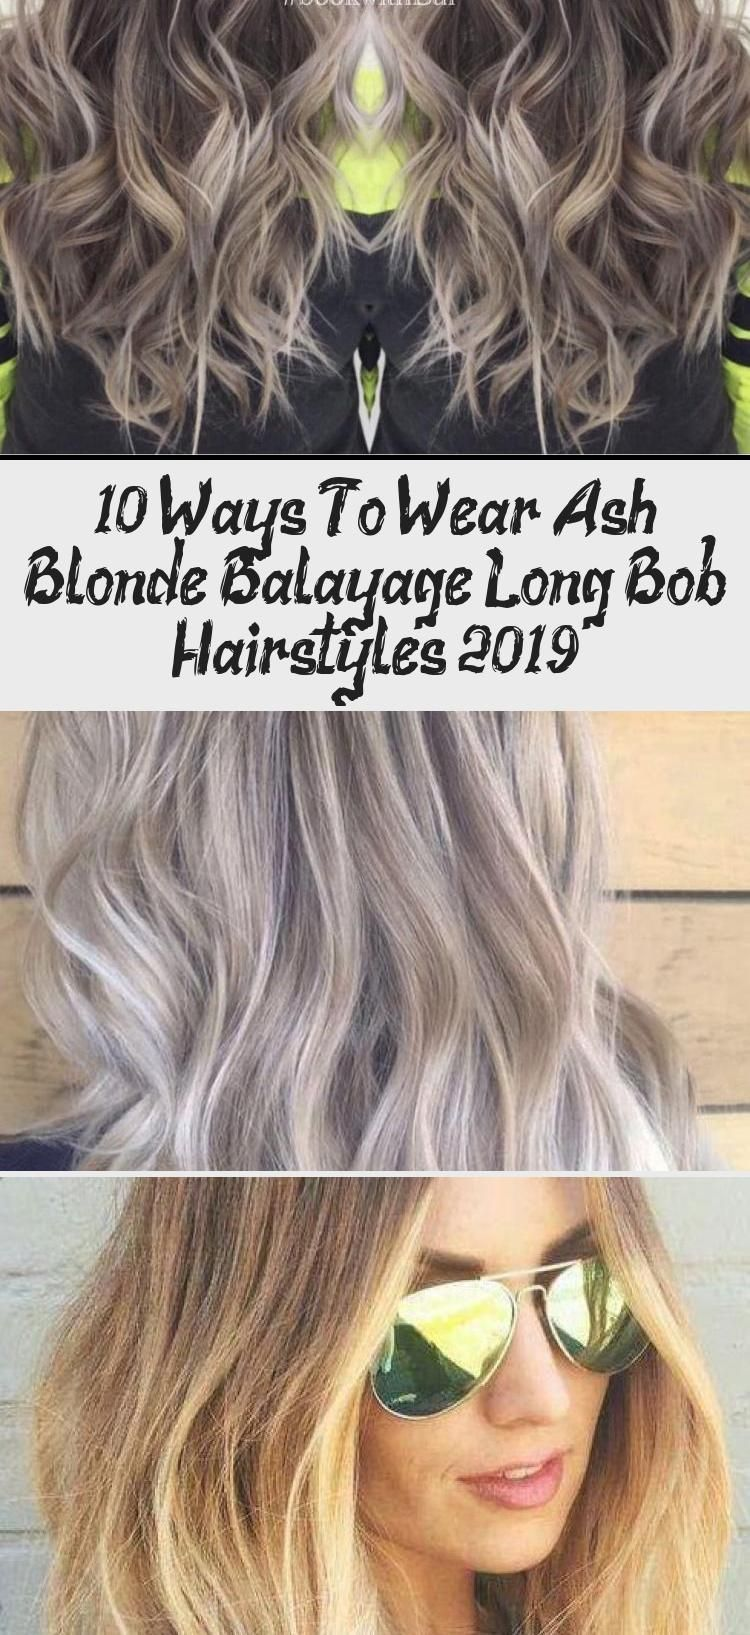 10 Ways To Wear Ash Blonde Balayage Long Bob Hairstyles 2019 #ashblondebalayage 10 Ways to Wear Ash Blonde Balayage Long Bob Hairstyles 2019, Ash Blonde Balayage Long Bob Extra Long Bob: Why you need to cut your hair right now Asymmetrical bob has been one of the most popular haircuts ever s..., Bob Hairstyles #balayagehairWithFringe #balayagehairRojo #balayagehairChatain #balayagehairStraight #balayagehairBurgundy #ashblondebalayage 10 Ways To Wear Ash Blonde Balayage Long Bob Hairstyles 2019 # #ashblondebalayage